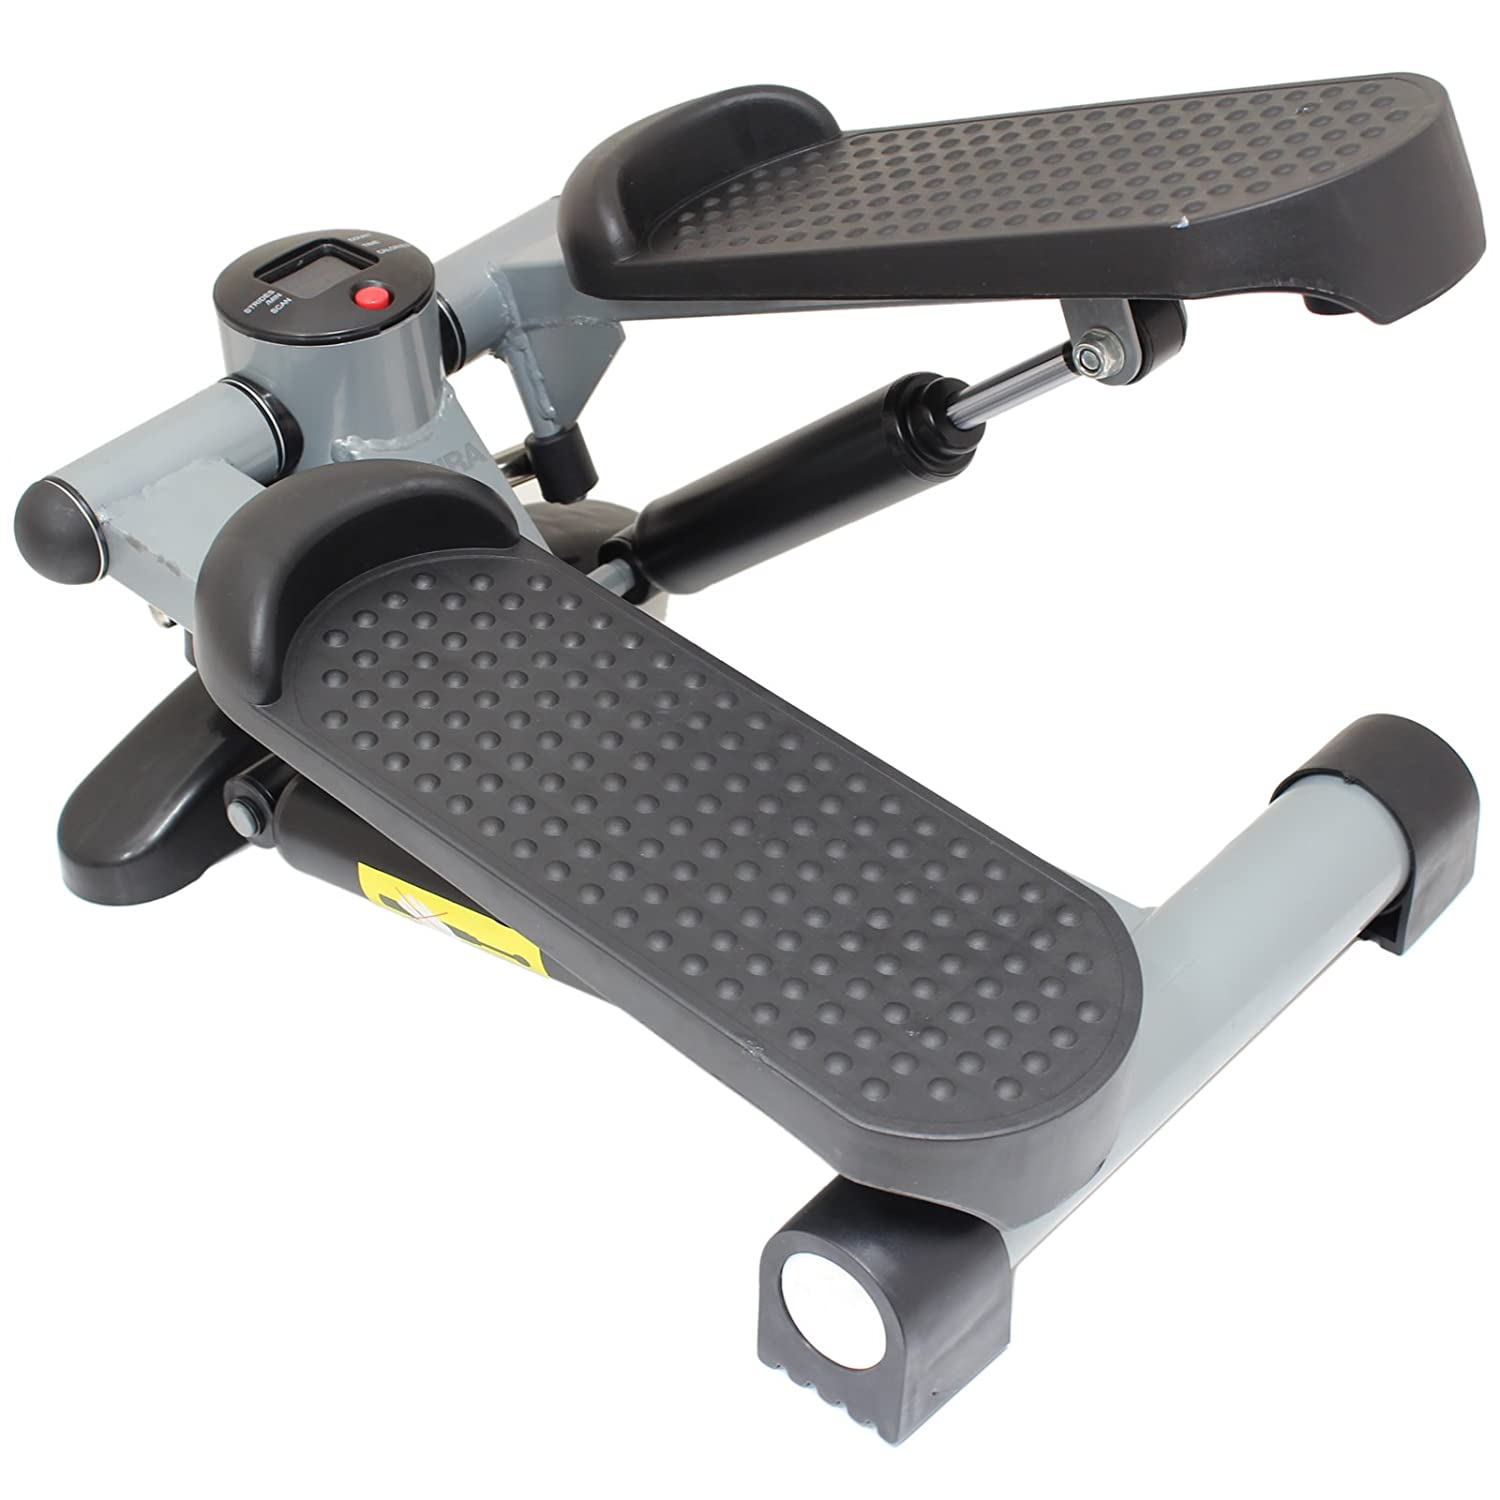 MiraFit Low Impact Aerobic Mini Stepper with Display